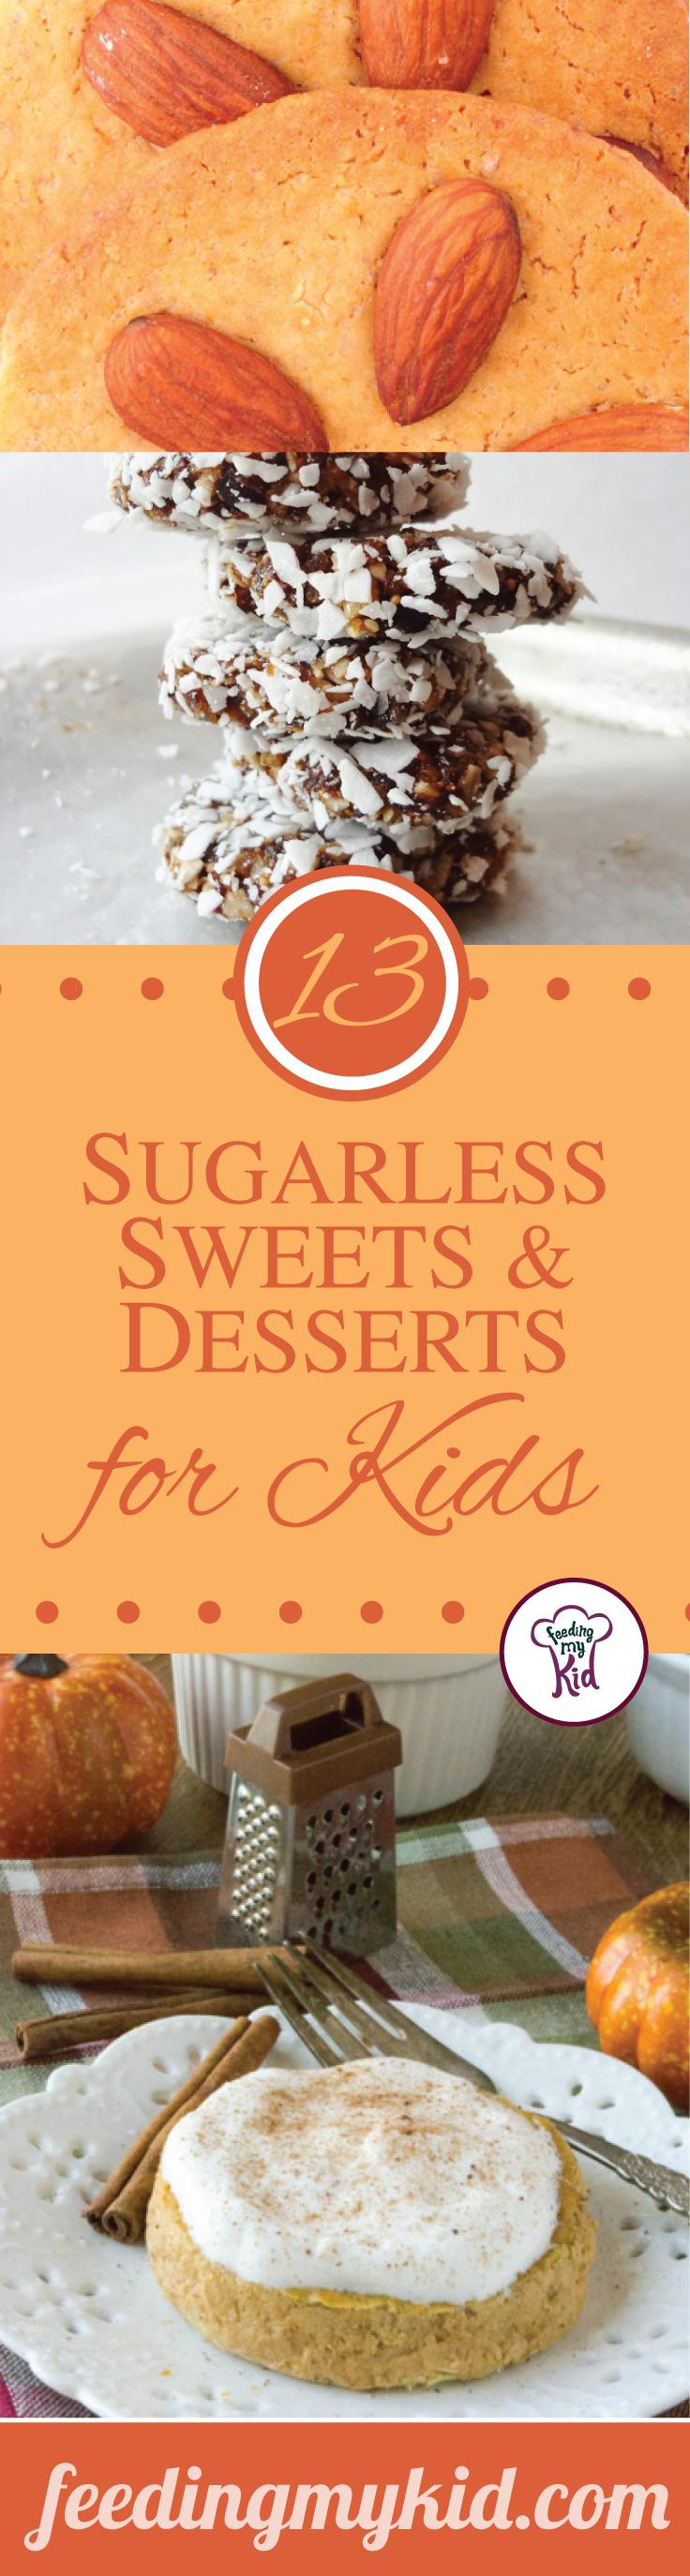 13 Sugarless Sweets and Desserts for Kids - From honey-Sweetened Orange Curd to Soft-Serve Banana Ice Cream; these are perfect for the whole family!